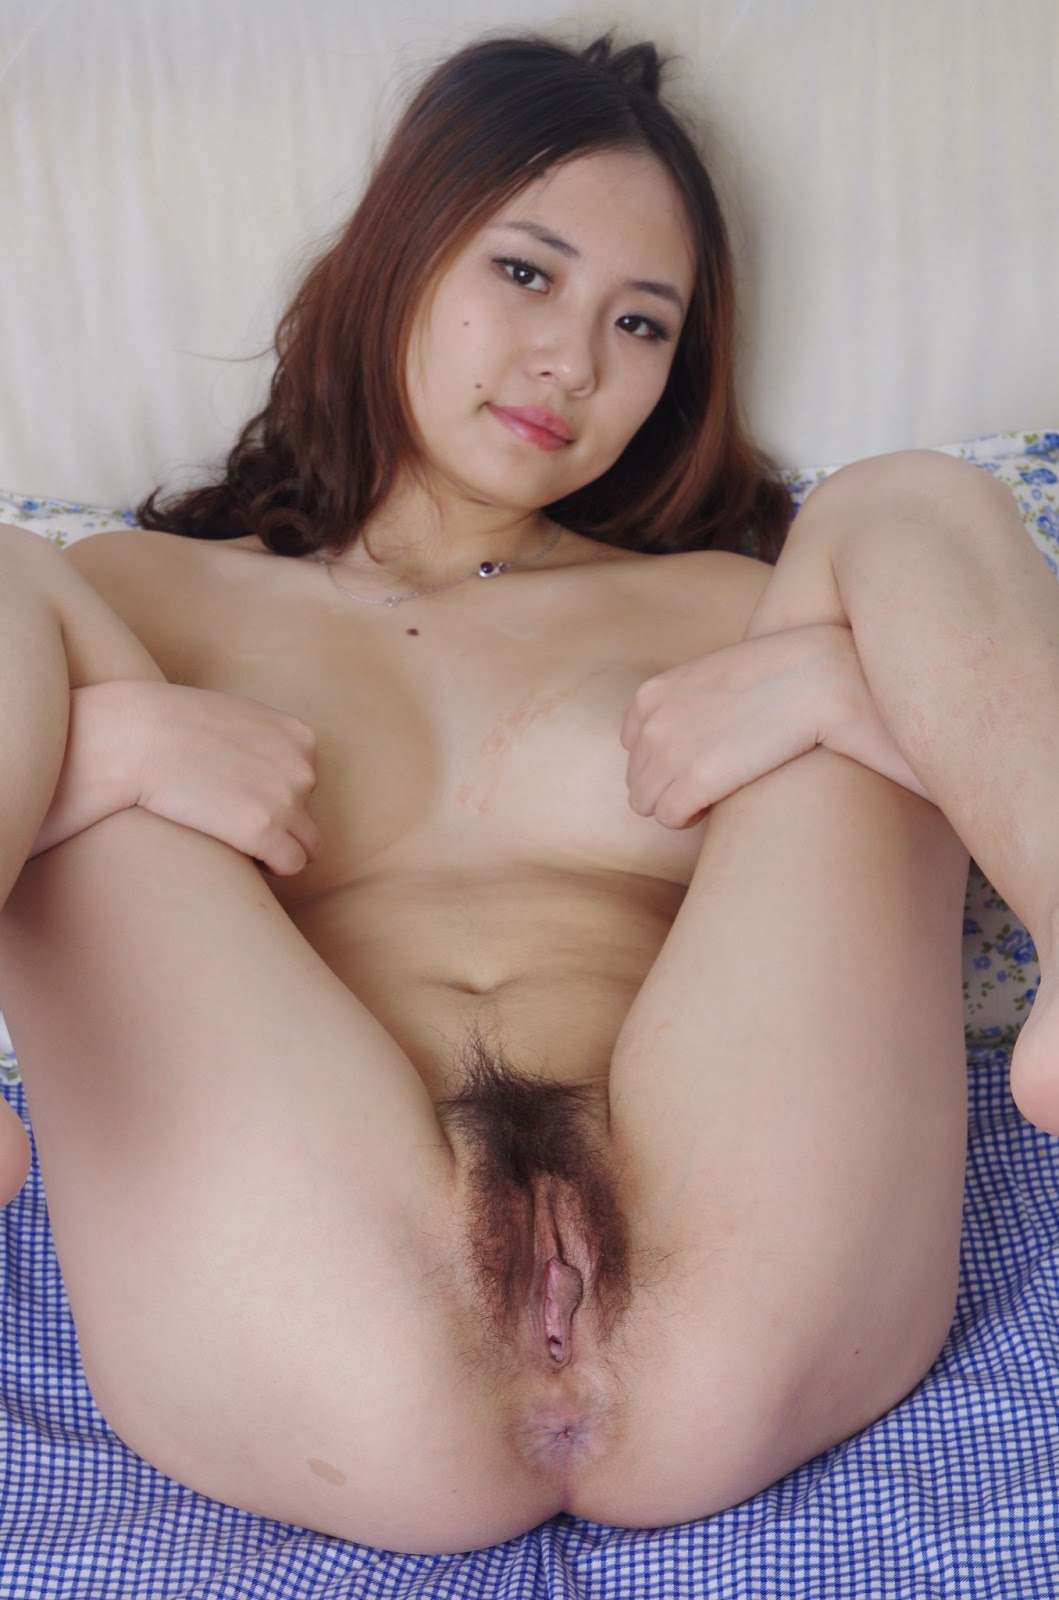 Nude Asian School Girls Photos